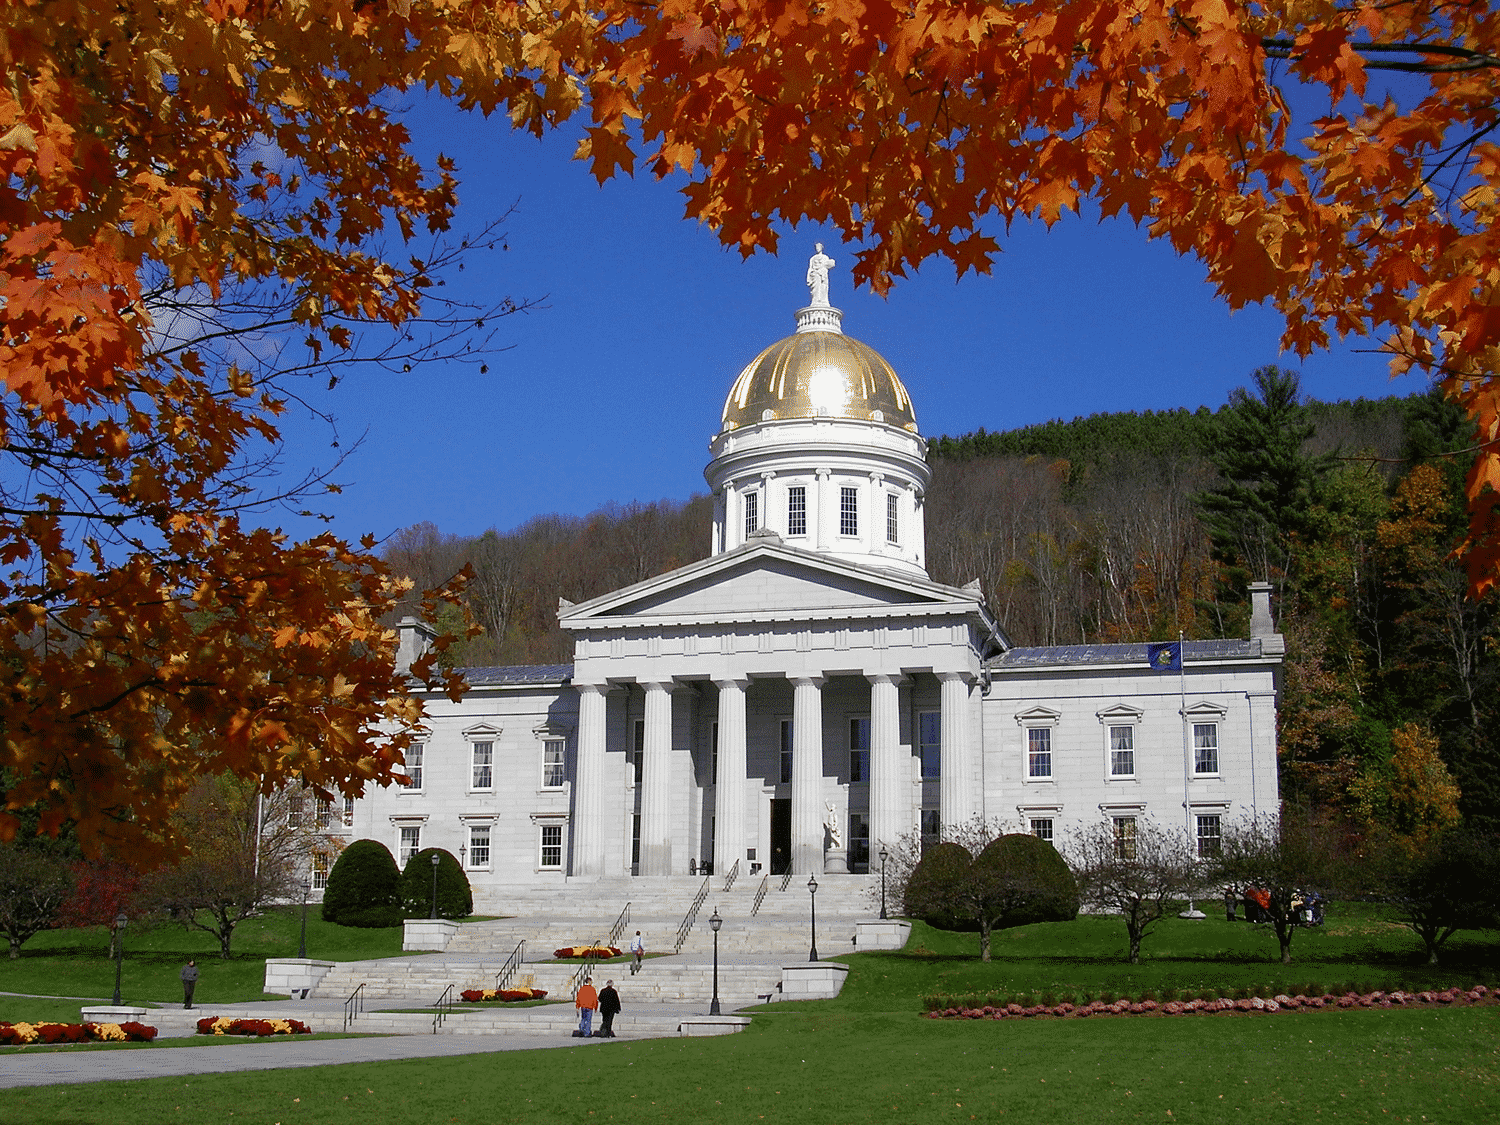 Exterior photo of the Vermont Statehouse in fall